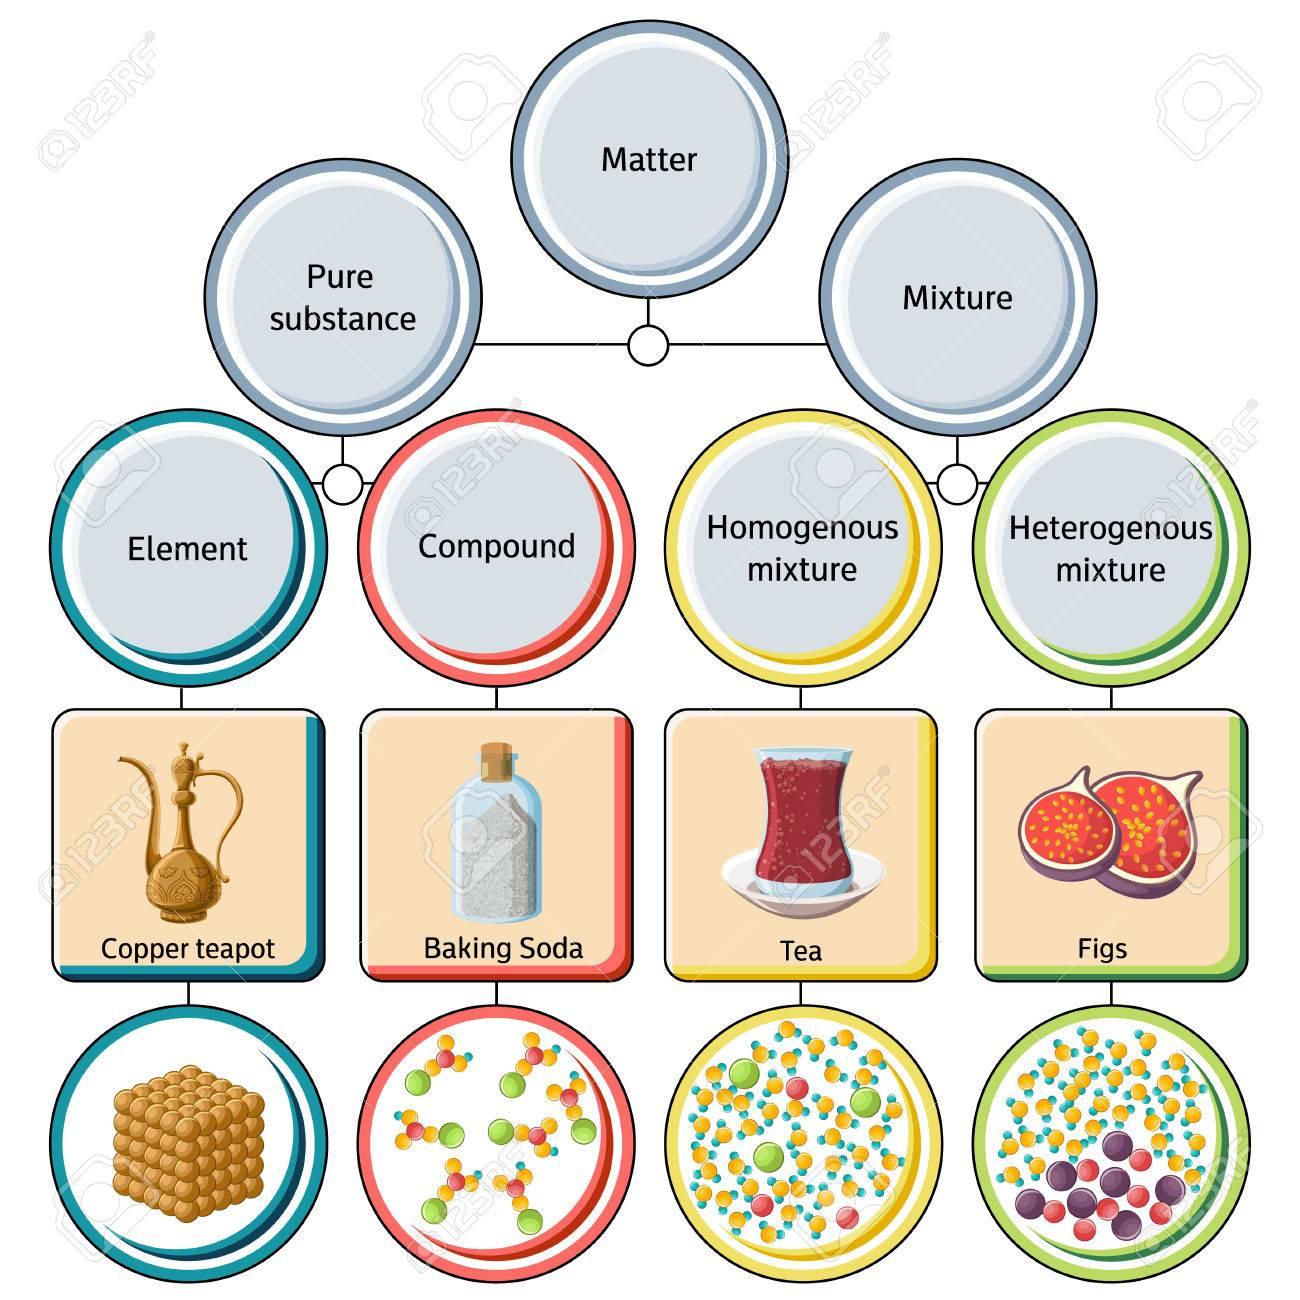 hight resolution of pure substances and mixtures diagram stock vector 84555380